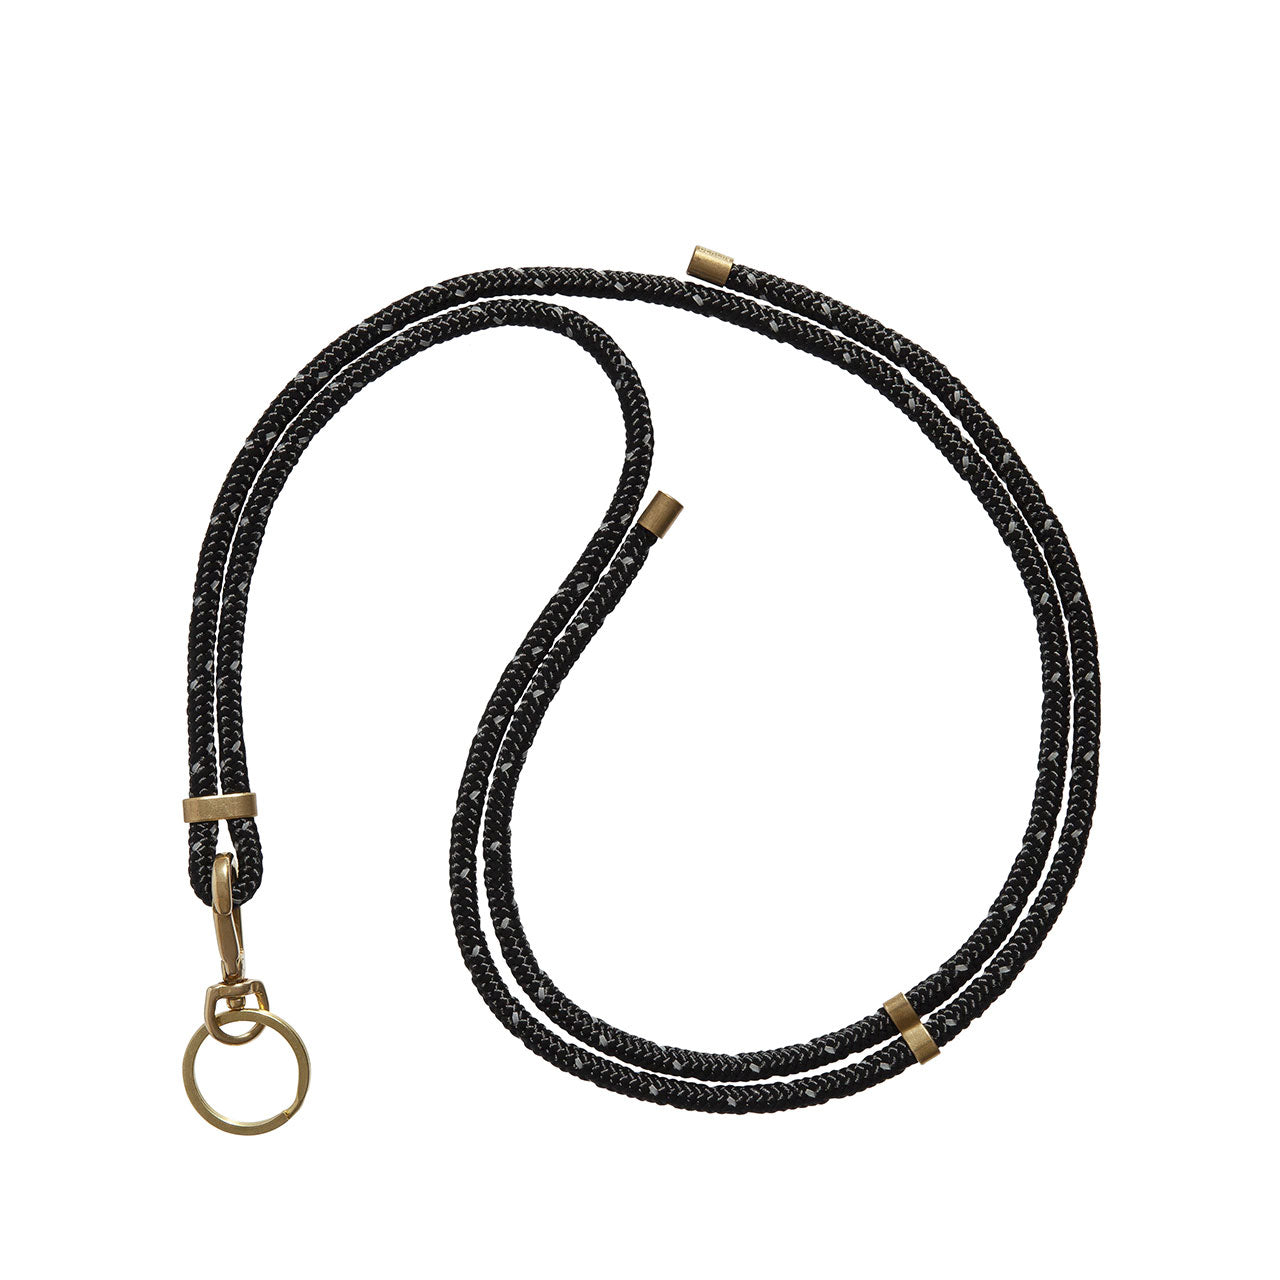 KNOK Key Holder Lanyard in black reflect - with added reflective material